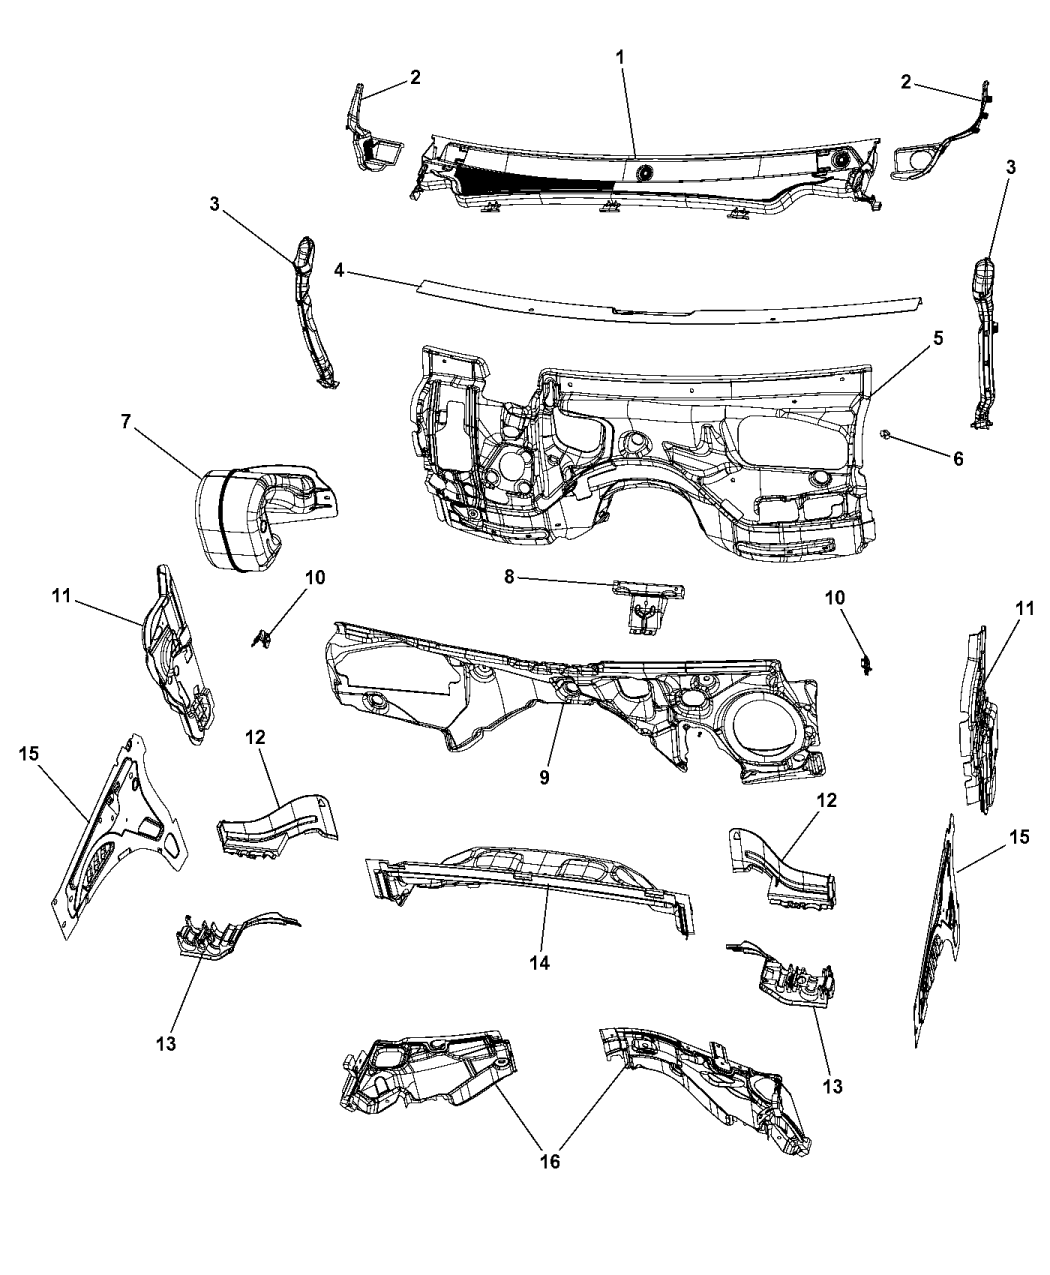 Jeep Cherokee Engine Diagram on jeep 4.2 engine vacuum diagram, 89 jeep yj wiring diagram, amc 304 jeep engine diagram, jeep cherokee cooling system diagram, 89 lincoln town car engine diagram, ford 4.0 liter engine diagram, jeep 4.7 engine diagram, jeep yj engine diagram, 89 jeep carburetor diagrams, jeep wrangler engine diagram, 89 geo tracker engine diagram, jeep cherokee starter diagram, jeep cherokee wiring diagram, 89 honda crx engine diagram, 2.5l jeep engine diagram, jeep liberty engine diagram, jeep 4.0 vacuum diagram, jeep 4.0l engine diagram, jeep 4.0 engine diagram, jeep cherokee parts diagram,